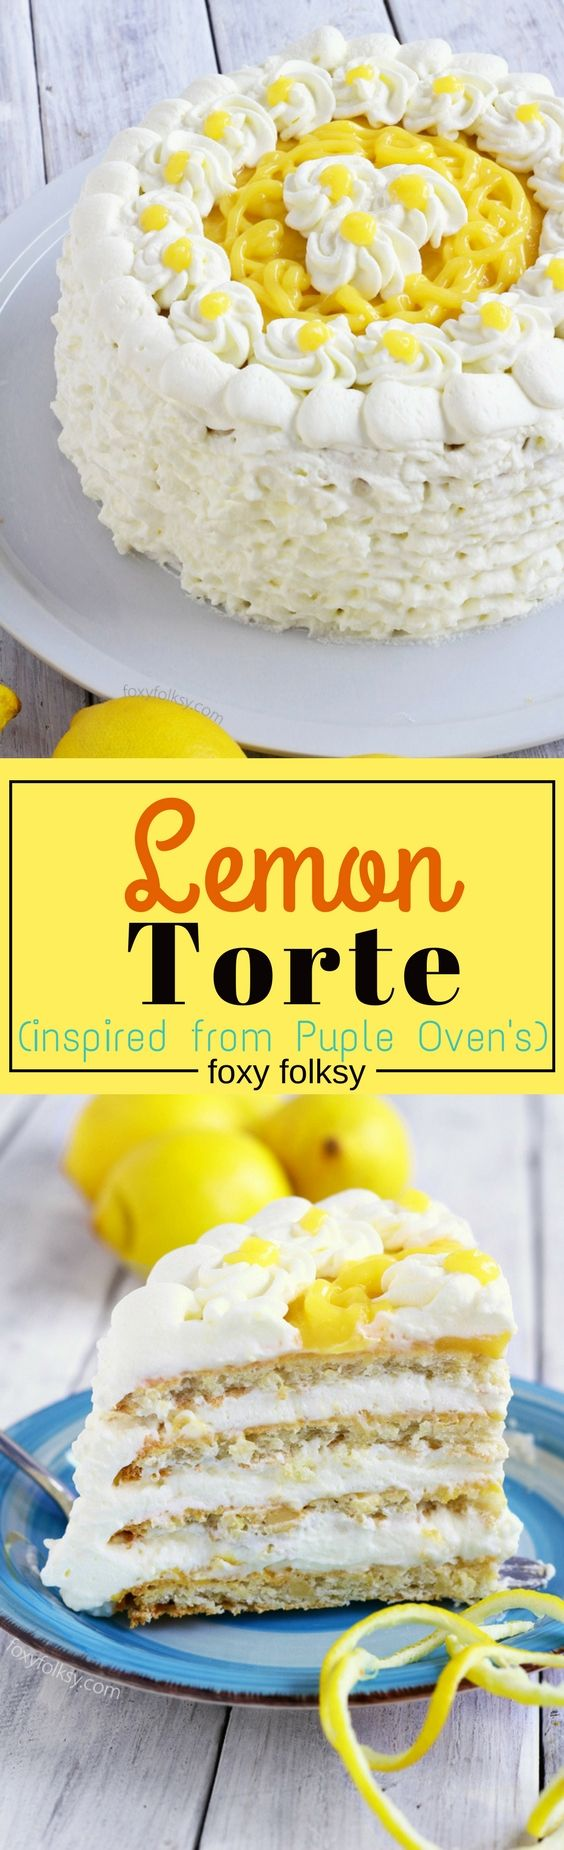 Try this lemon Torte cake (inspired by Purple Oven) for a refreshingly sweet, tangy and nutty deliciousness. | www.foxyfolksy.com